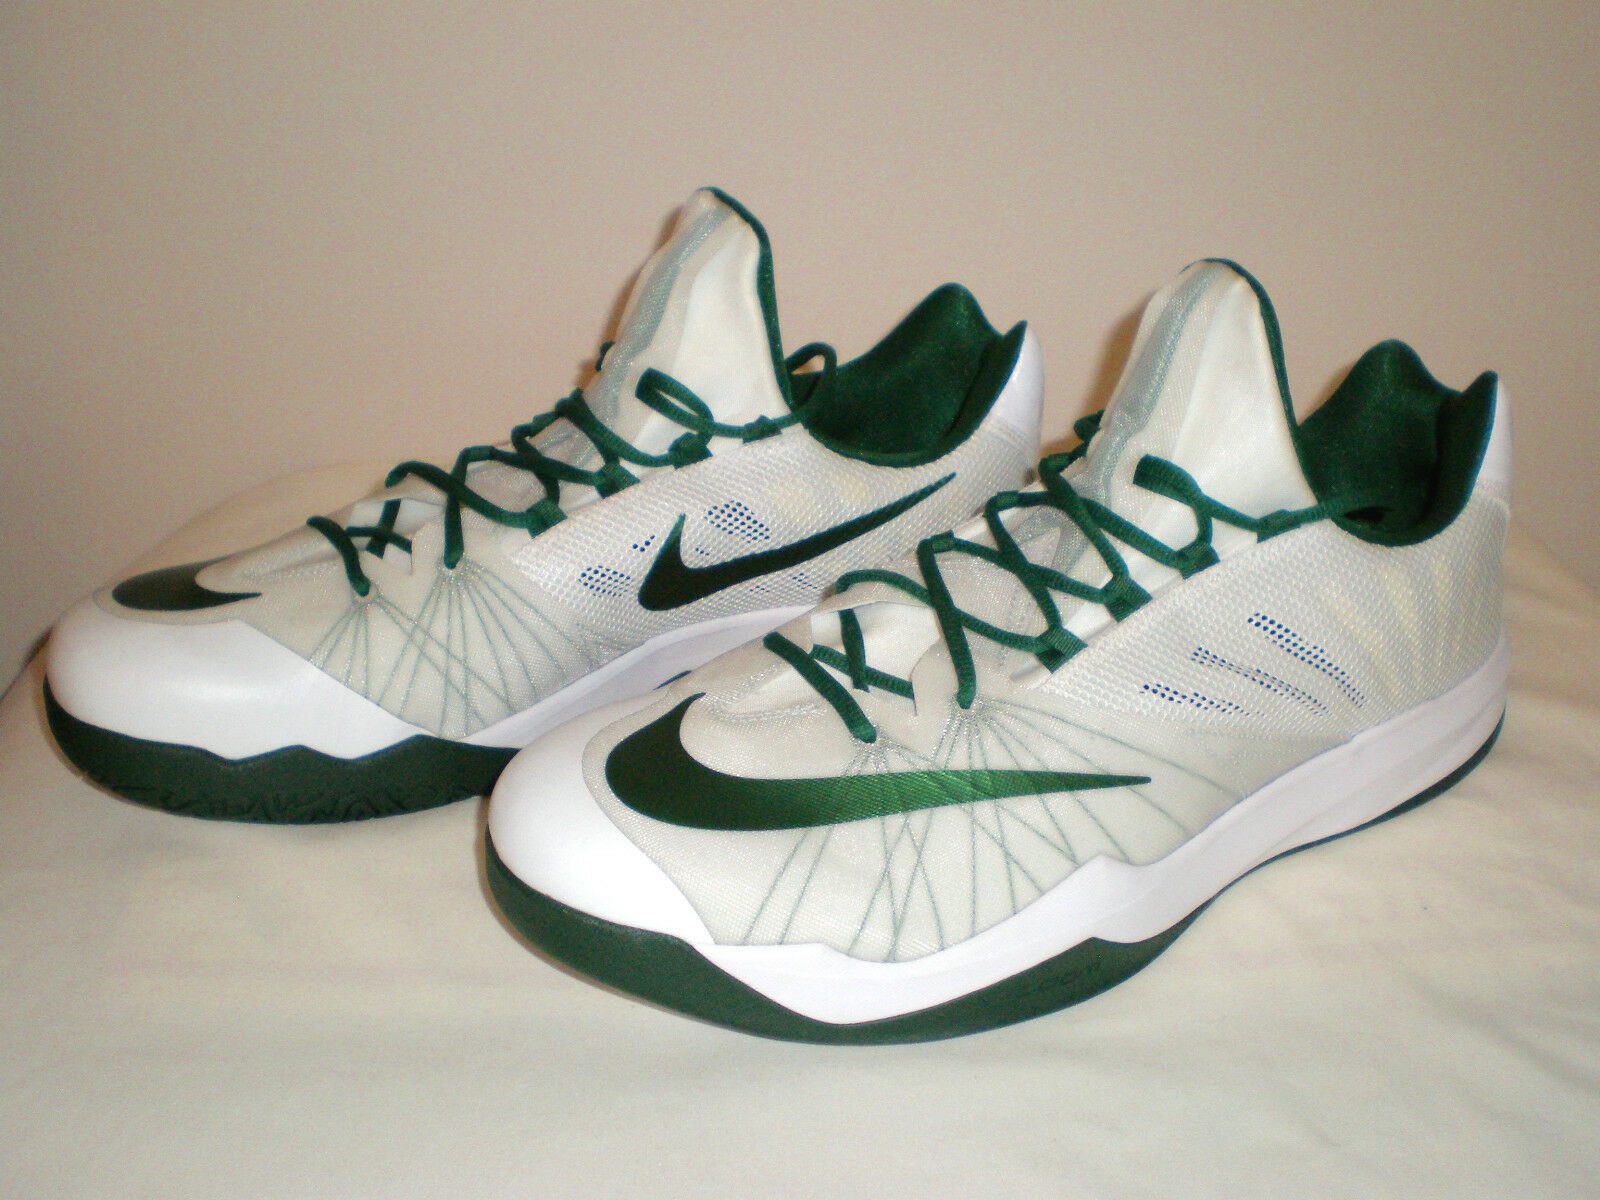 Mens NIKE Zoom Run the One Basketball Shoes Sneaker James WHITE Harden  GREEN WHITE James 18 b76f4a